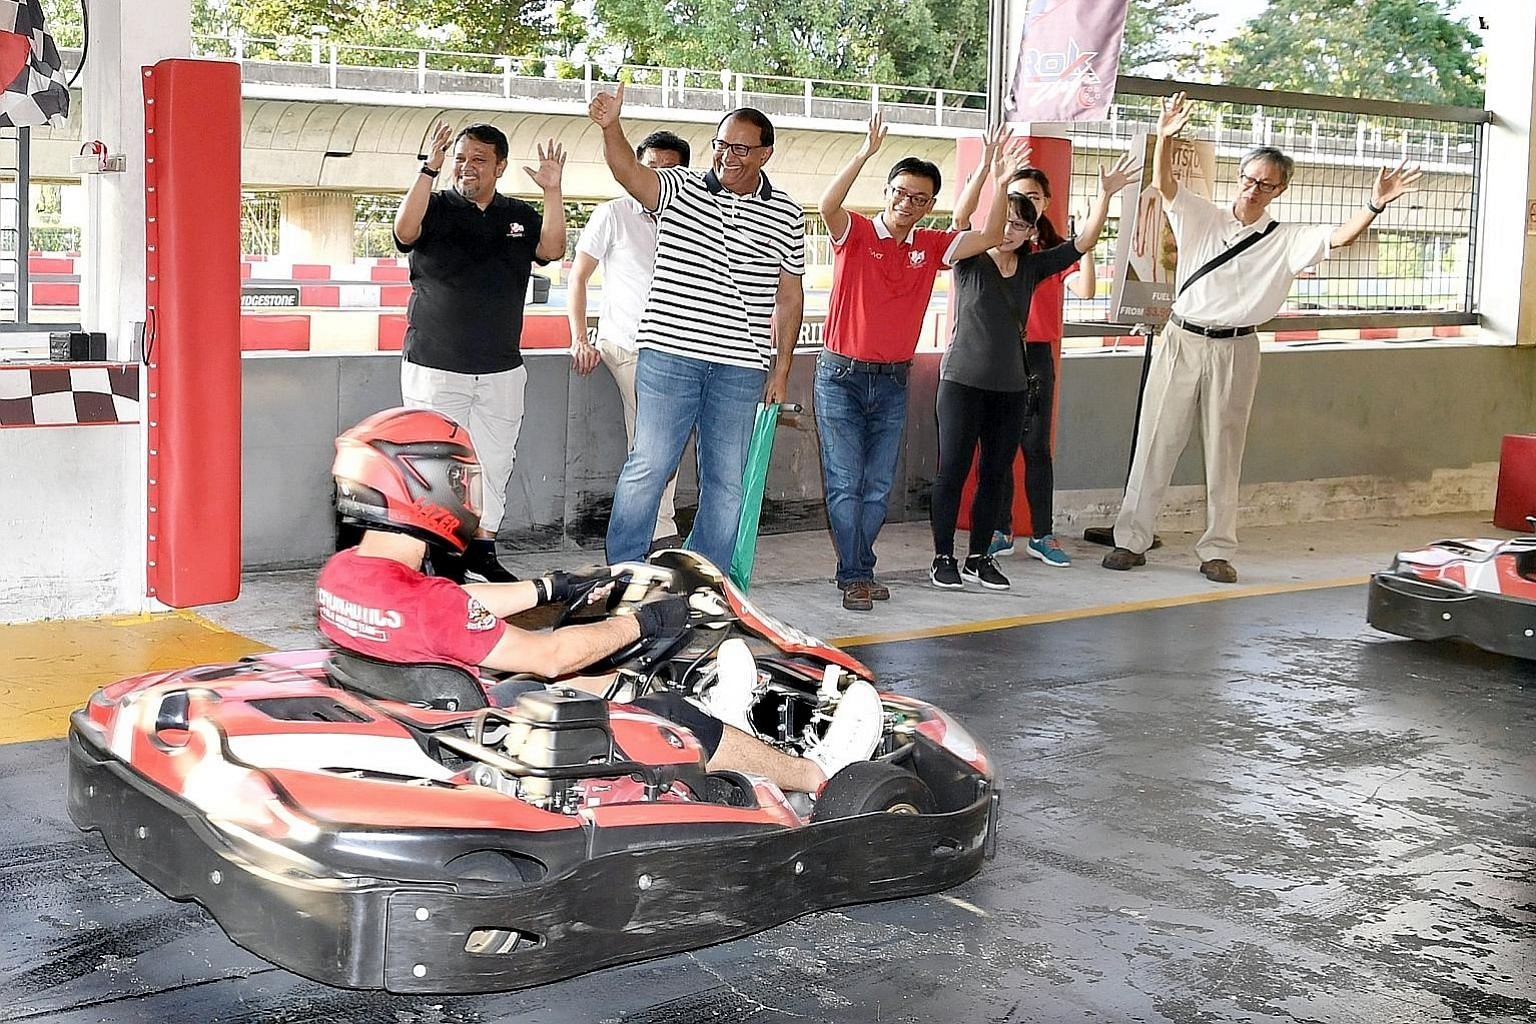 Minister for Communications and Information S. Iswaran (striped t-shirt) flagging off the karting race, one of the National Deaf Games events, at Kranji yesterday.